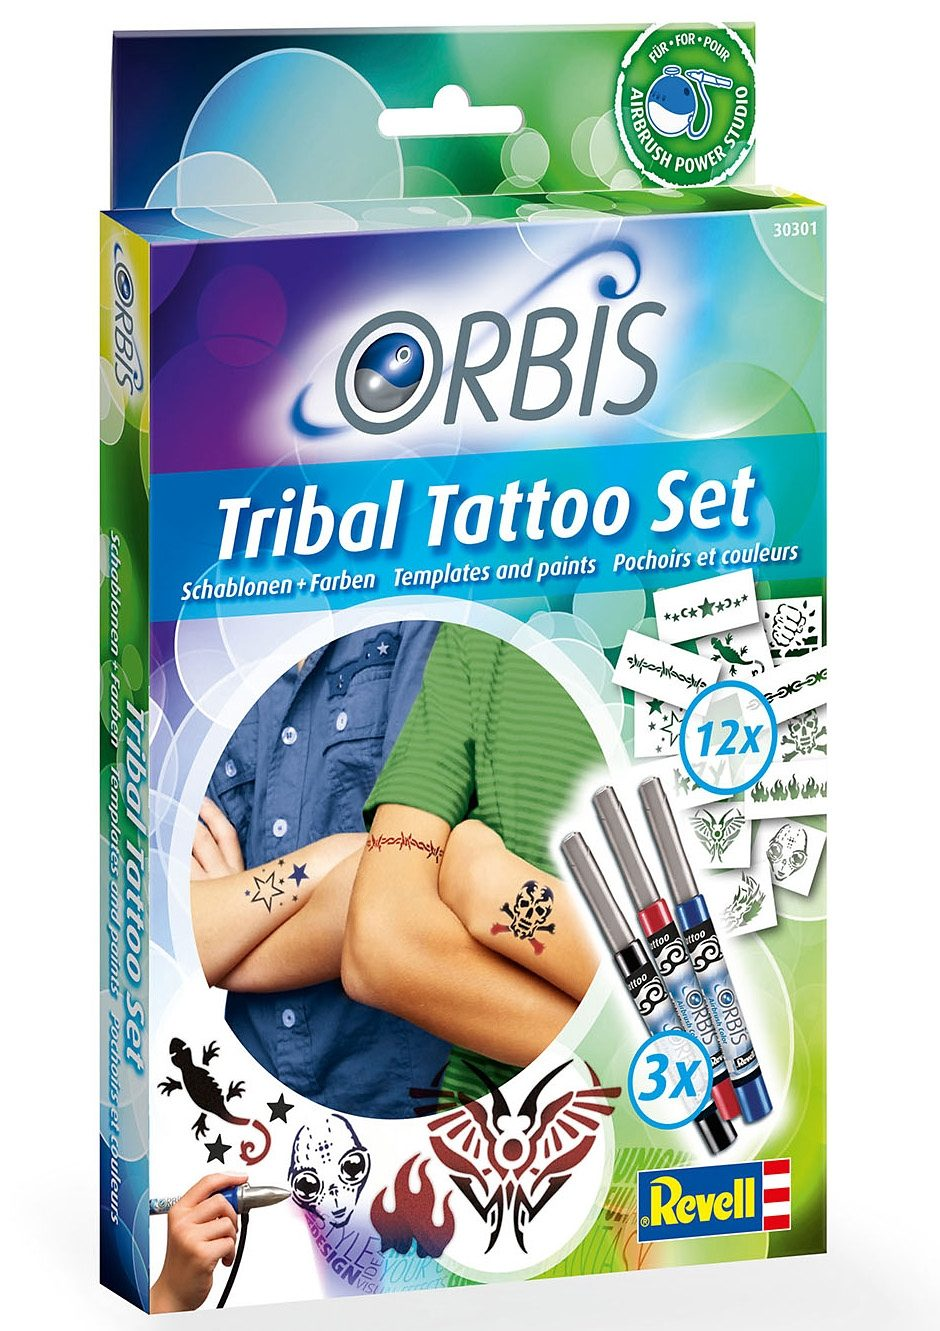 Revell® Airbrush Tattoo Studio, »Orbis Tribal Tattoo Set«